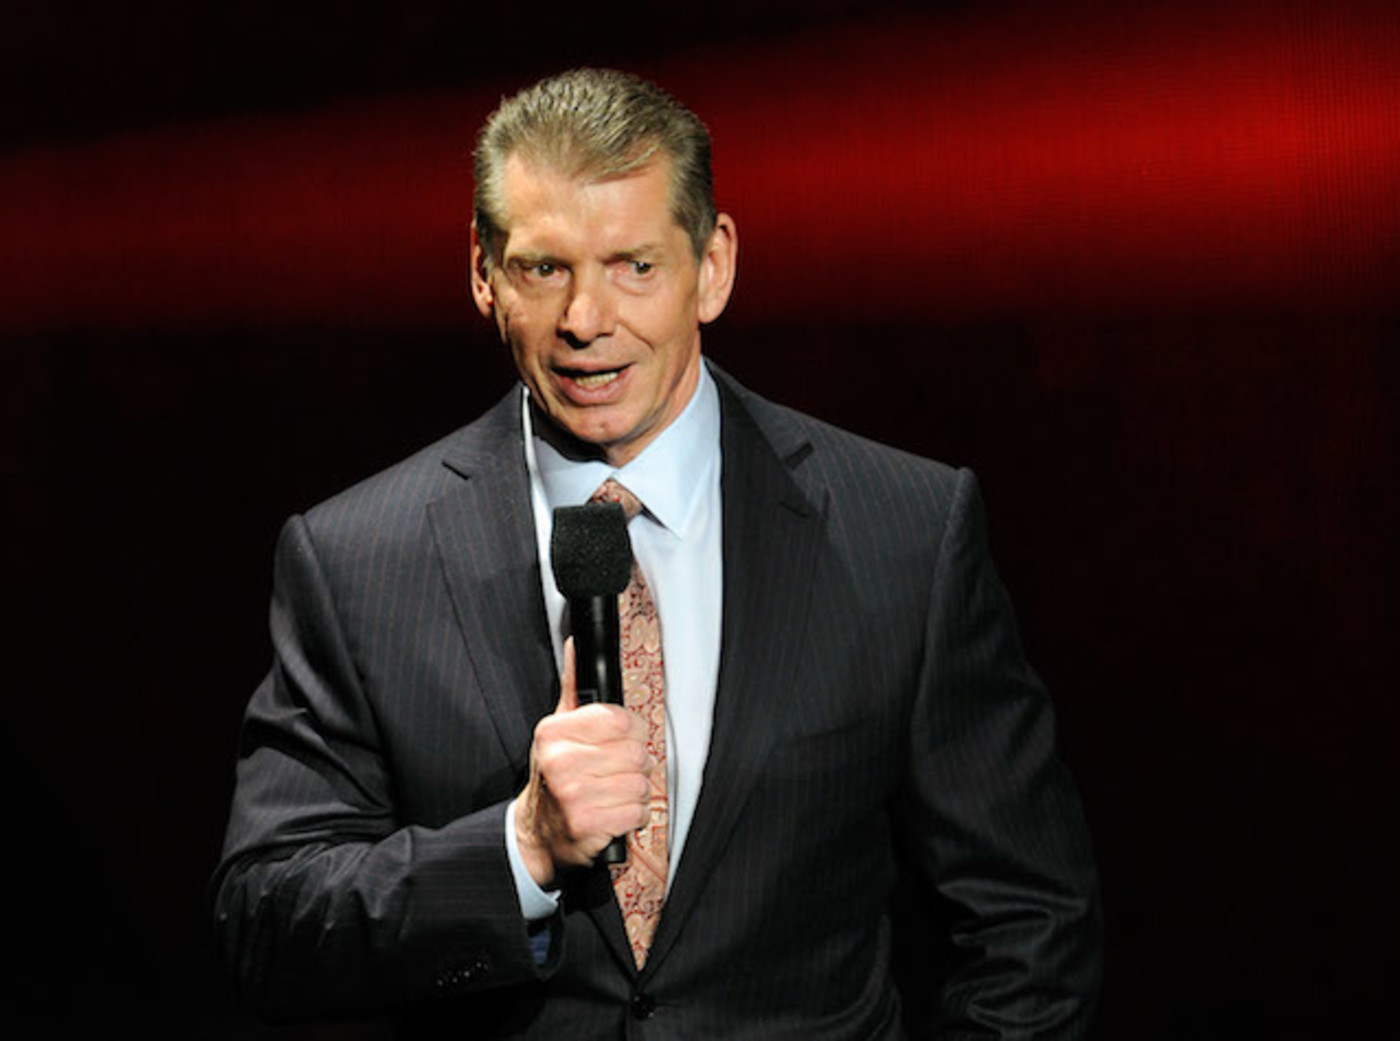 This is a picture of Vince McMahon.